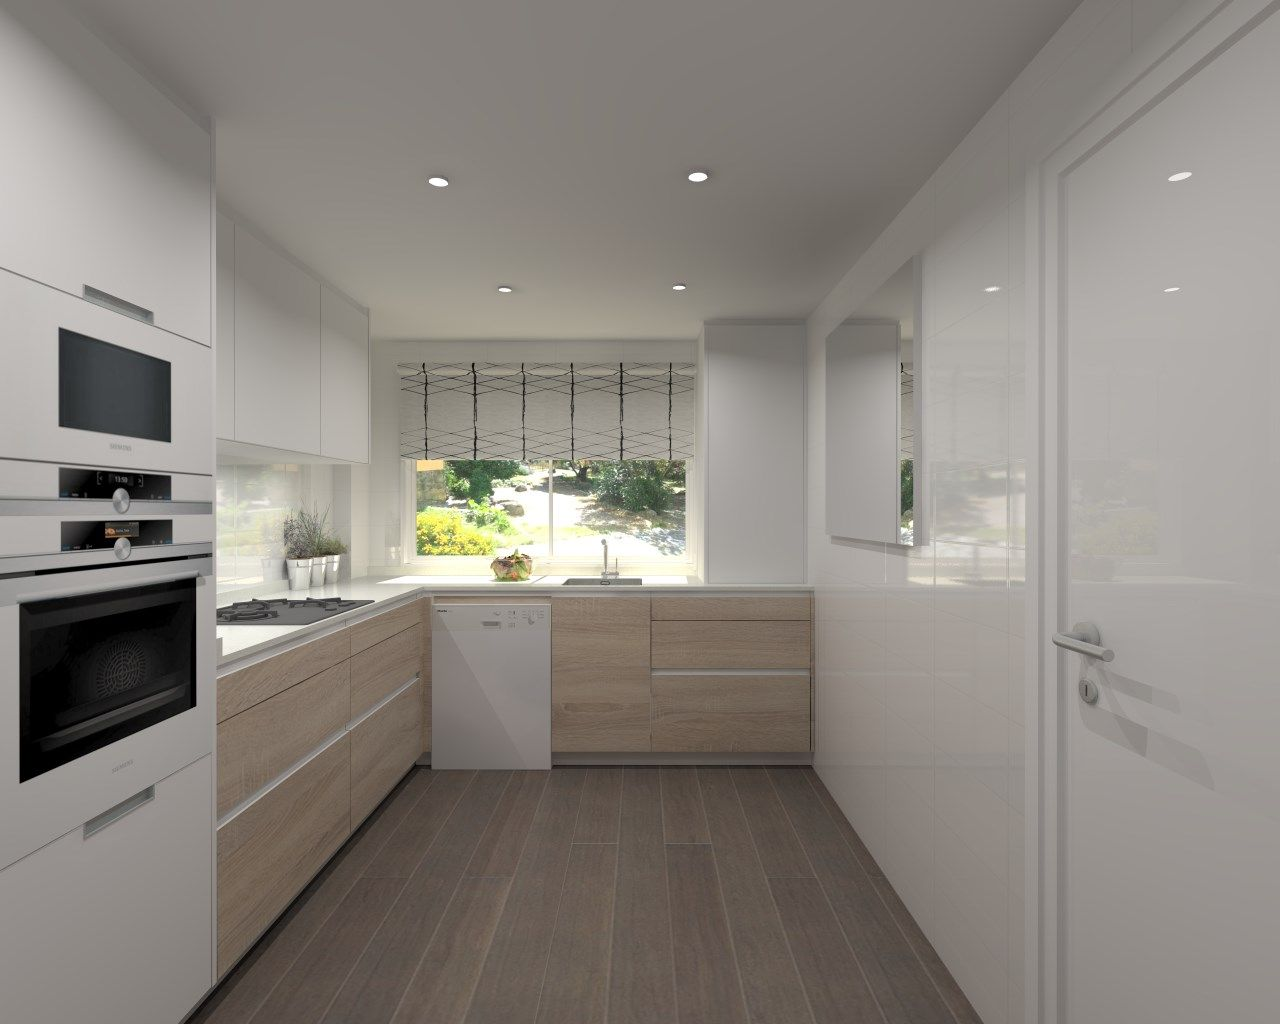 Cocina santos modelo line estratificado roble y blanco con - Cocinas color roble ...